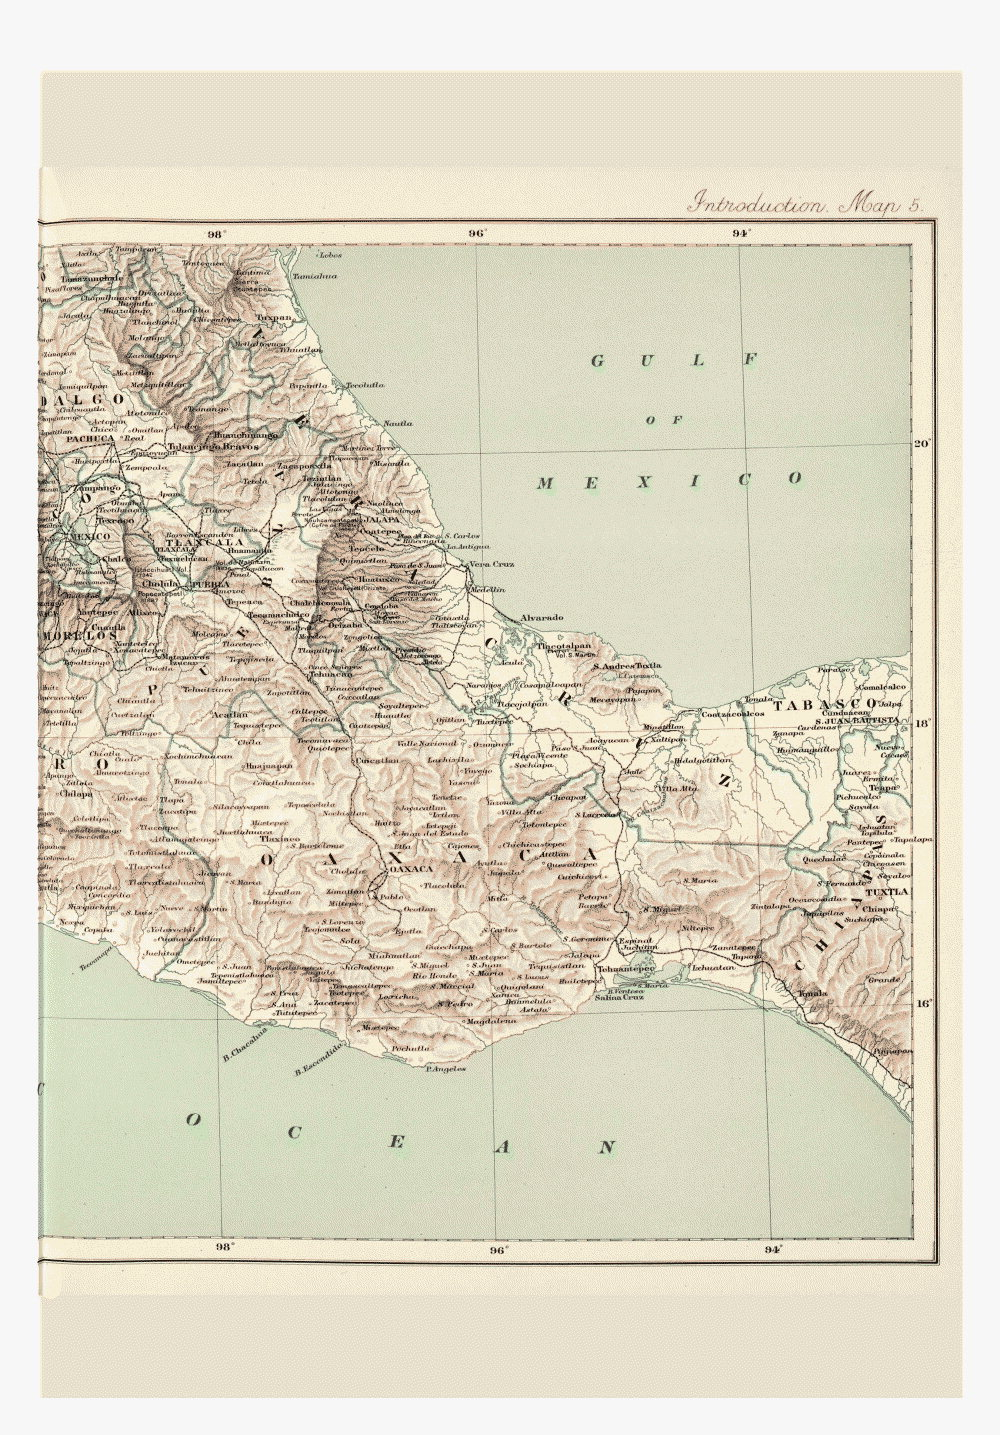 Maps of Central America,  Image number:bca_01_00_00_191